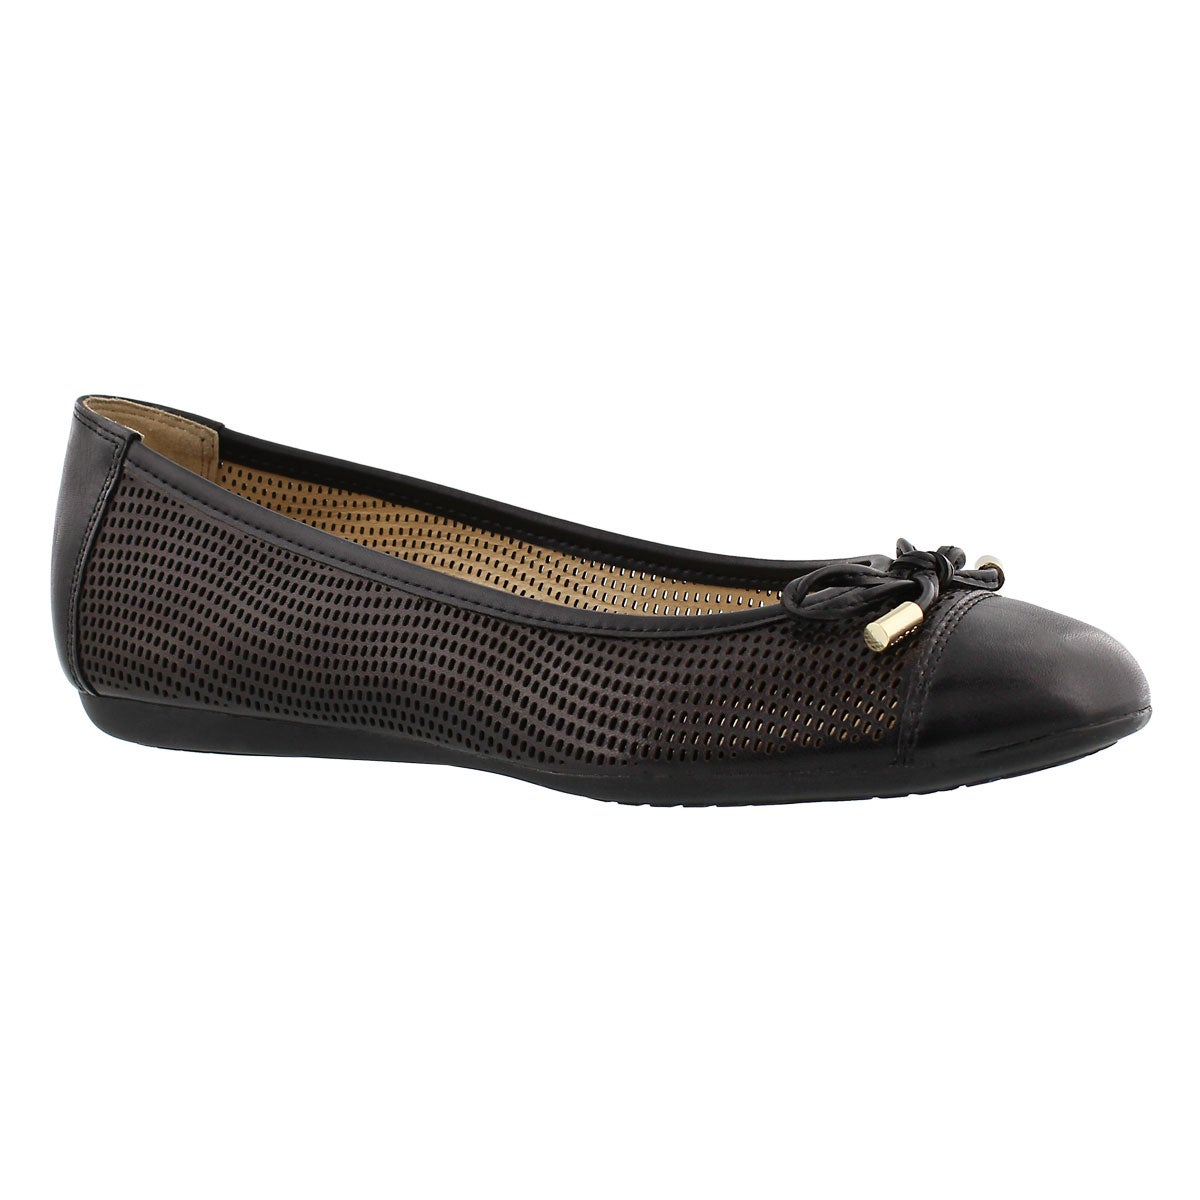 Lds Lola black leather ballerina flat